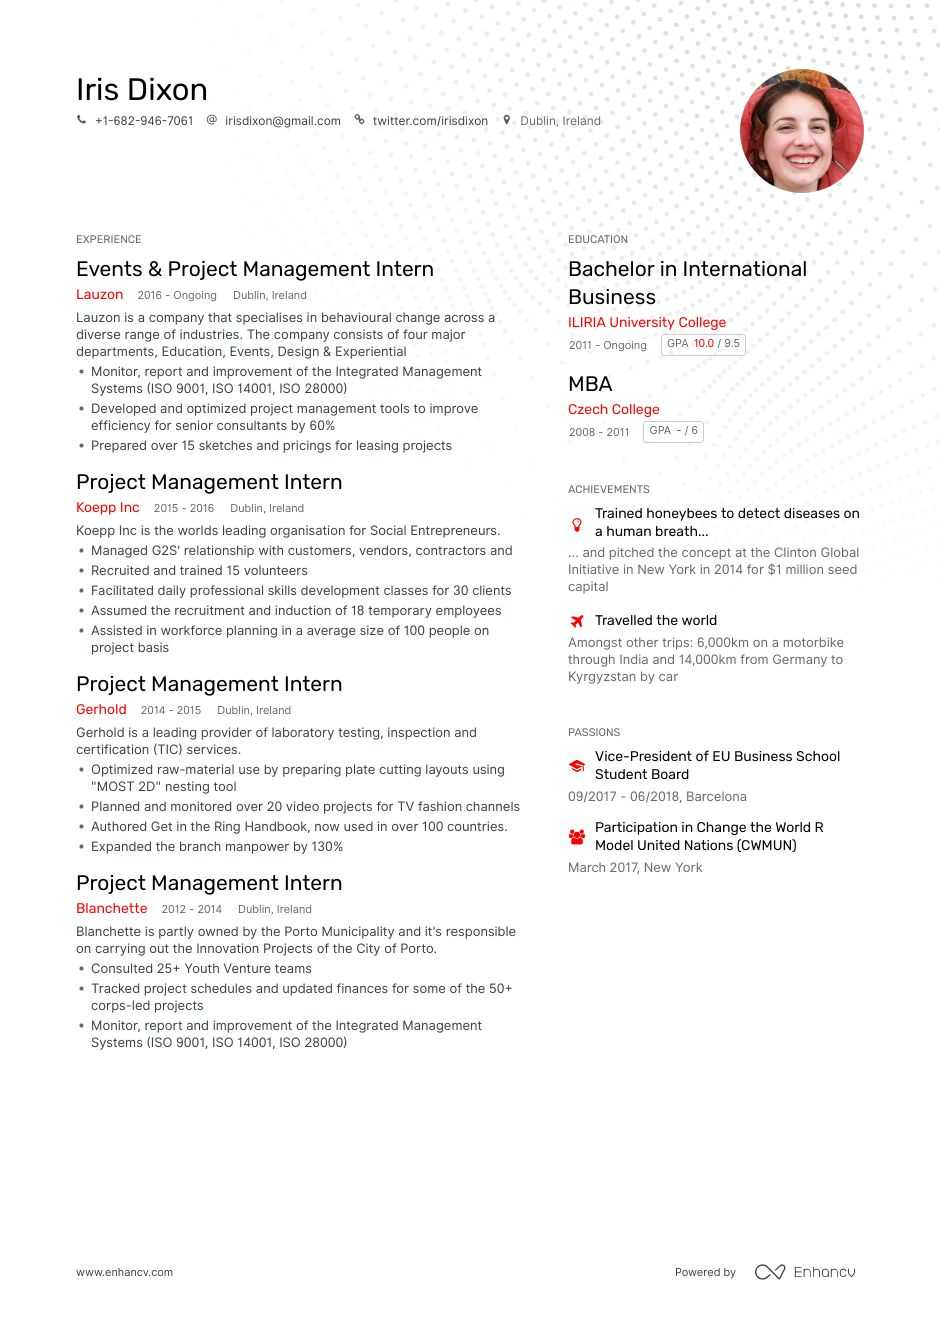 top project management intern resume examples samples for enhancv nations example student Resume United Nations Resume Example